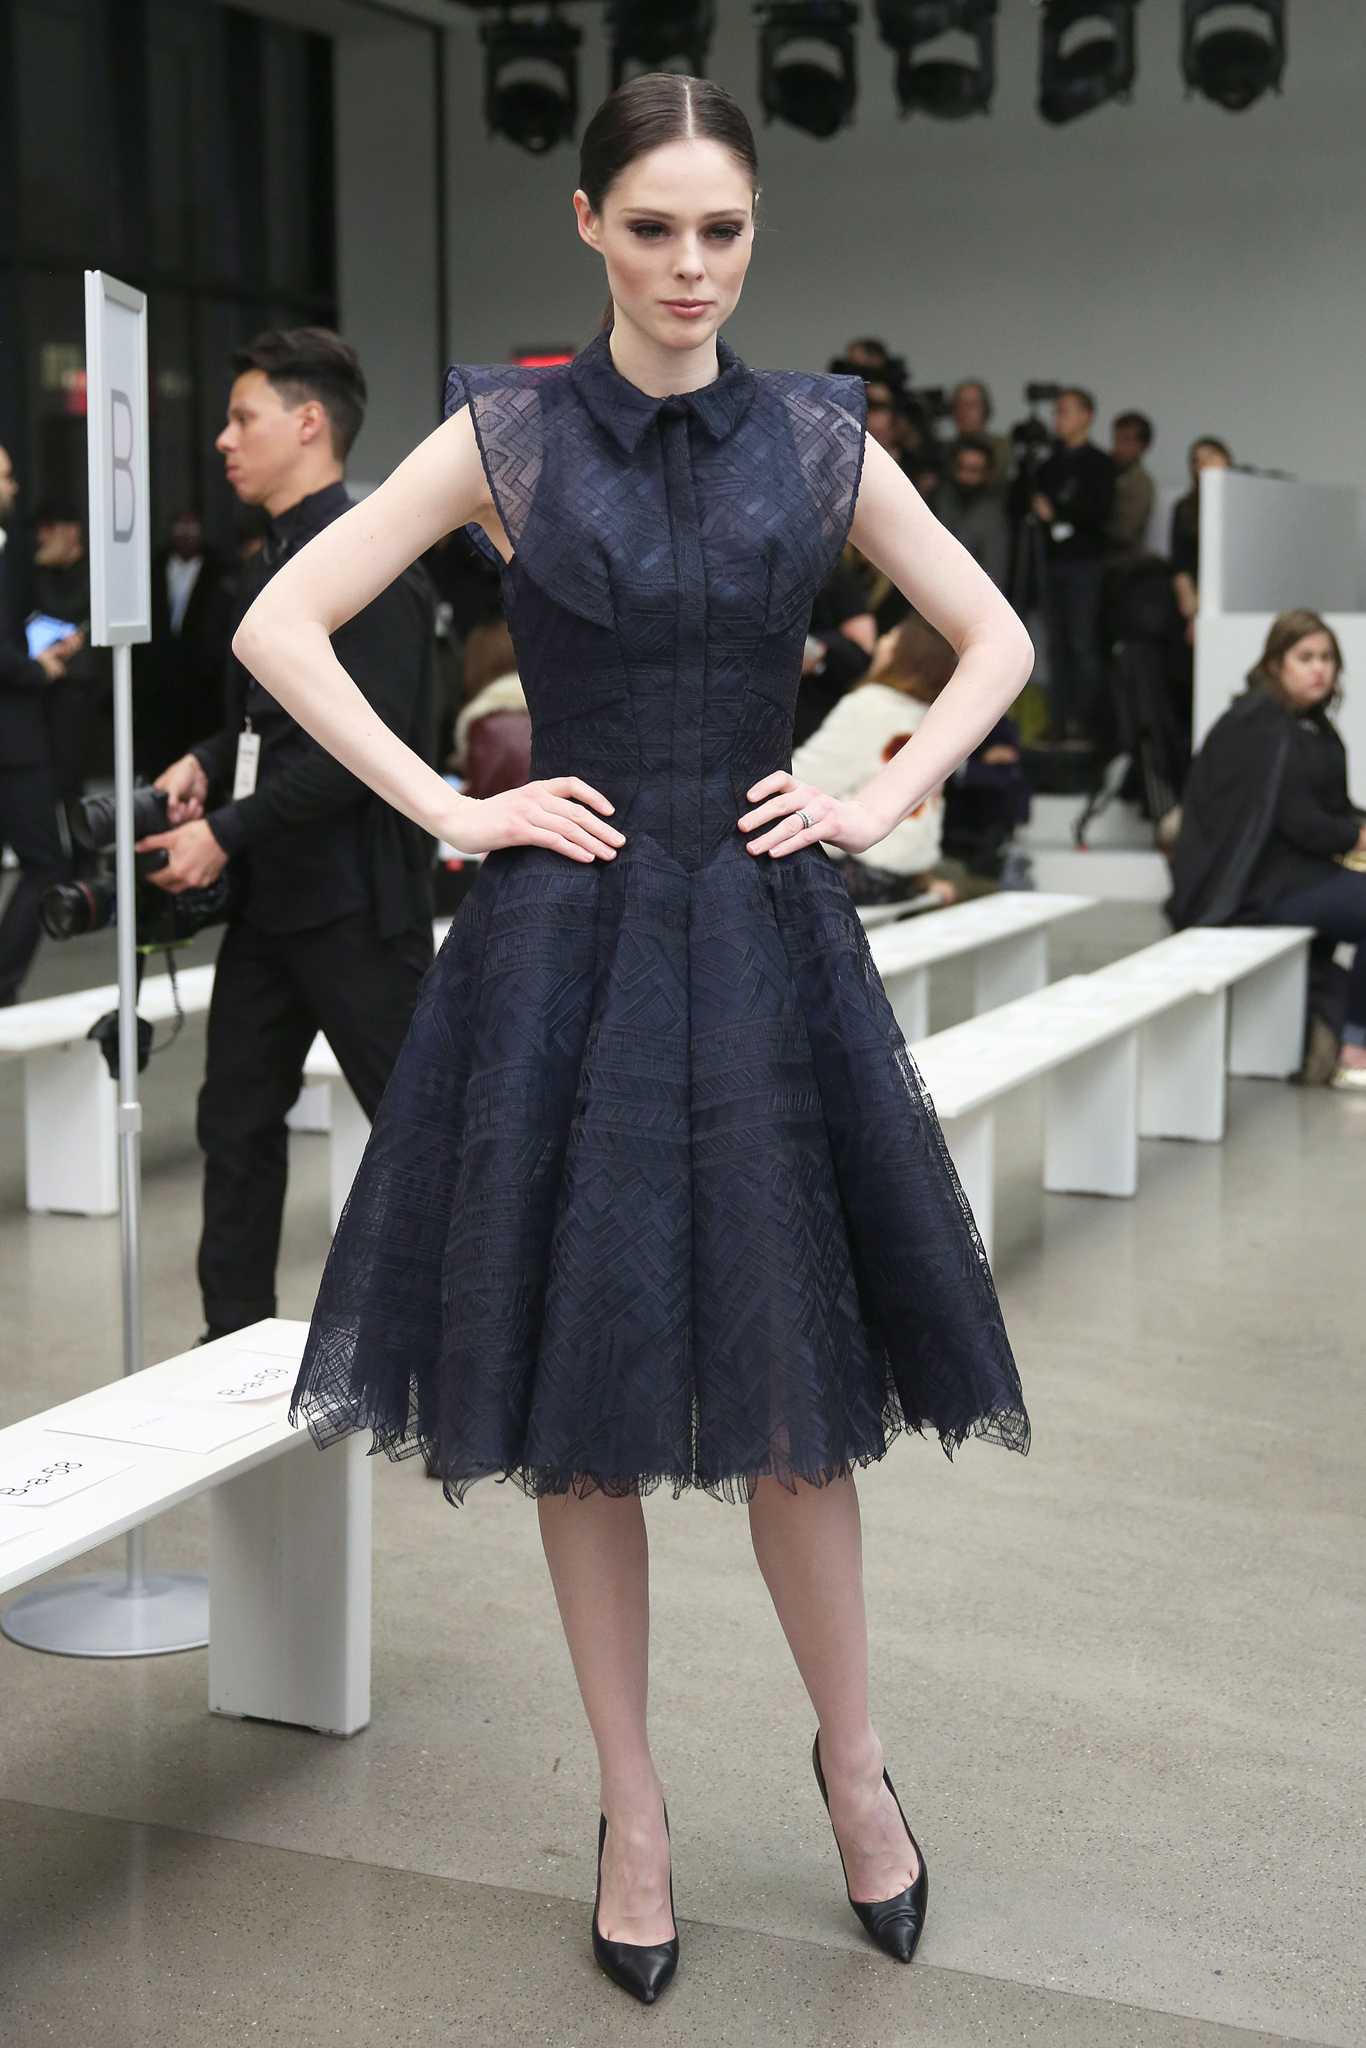 Coco Rocha at Front Row at Zac Posen RTW Fall 2016